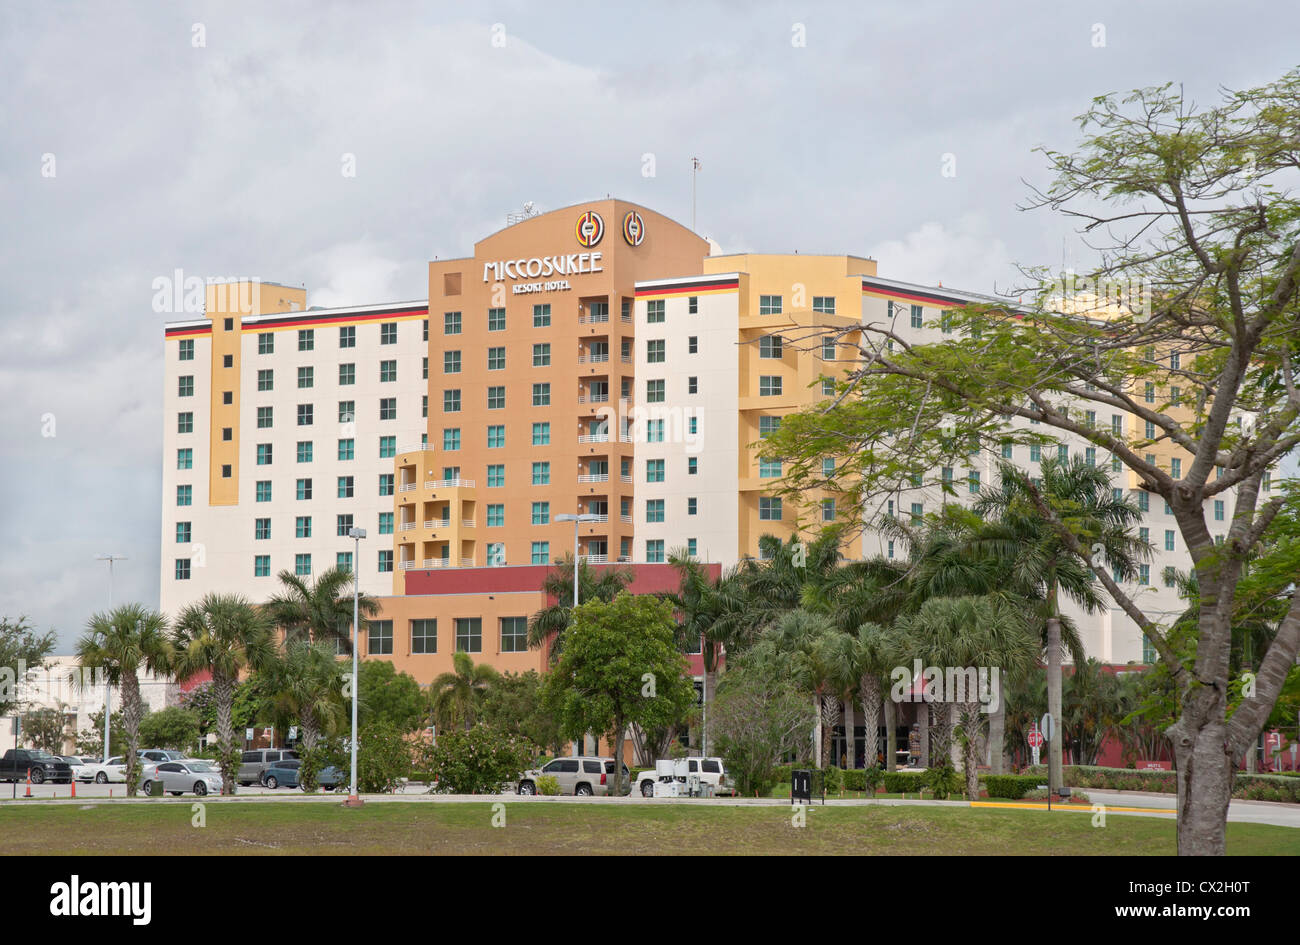 Miccosukee Resort and Gaming facility located just west of Miami in the Everglades along Florida's Tamiami Trail. - Stock Image